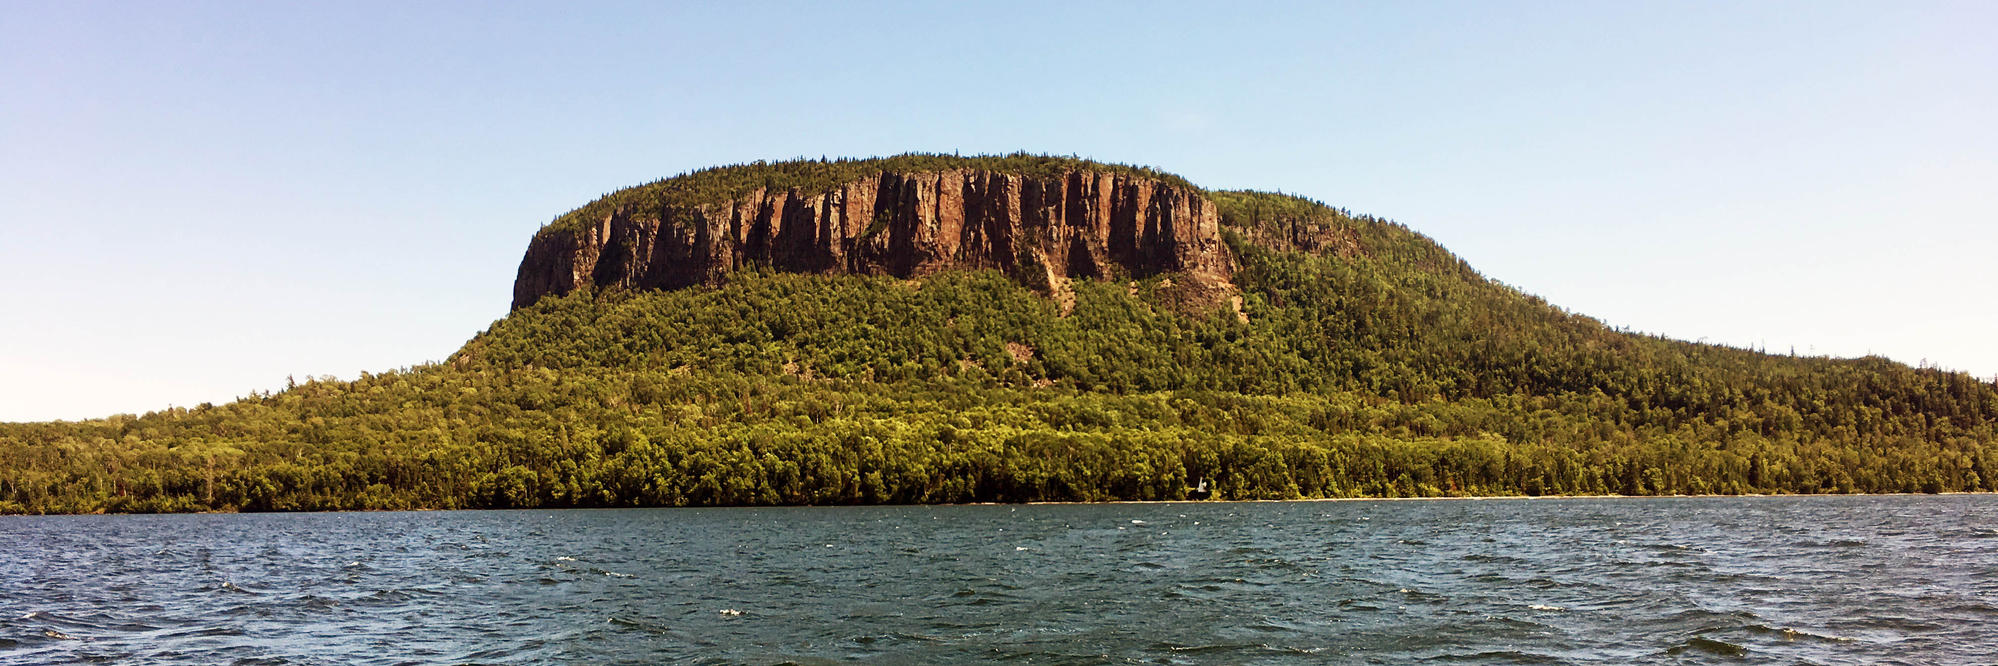 Pie Island, Thunder Bay, Ontario